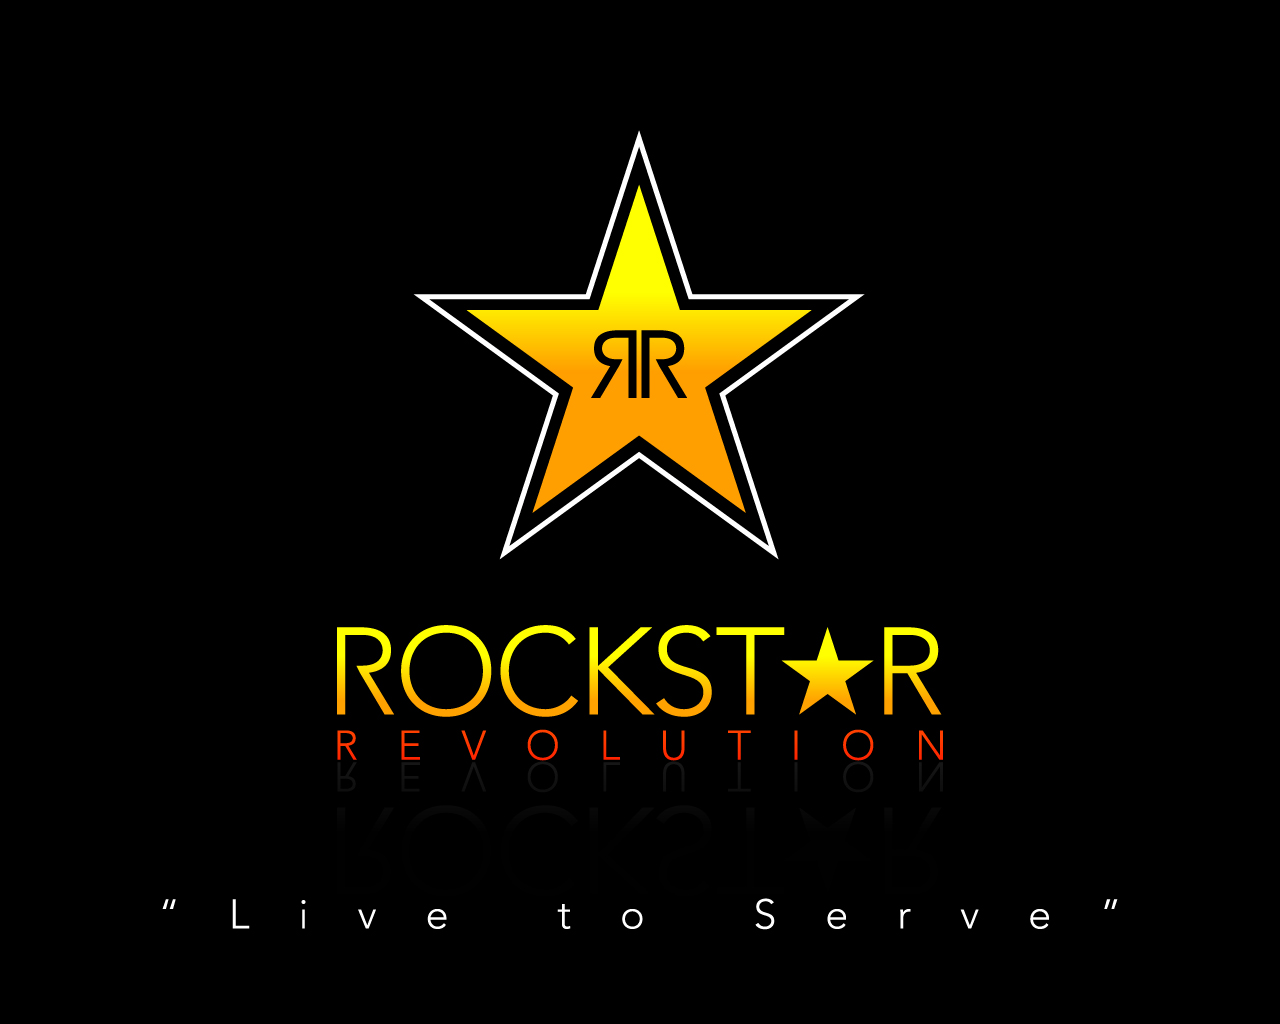 Rockstar Energy Wallpaper and Background 1280x1024 ID 1280x1024